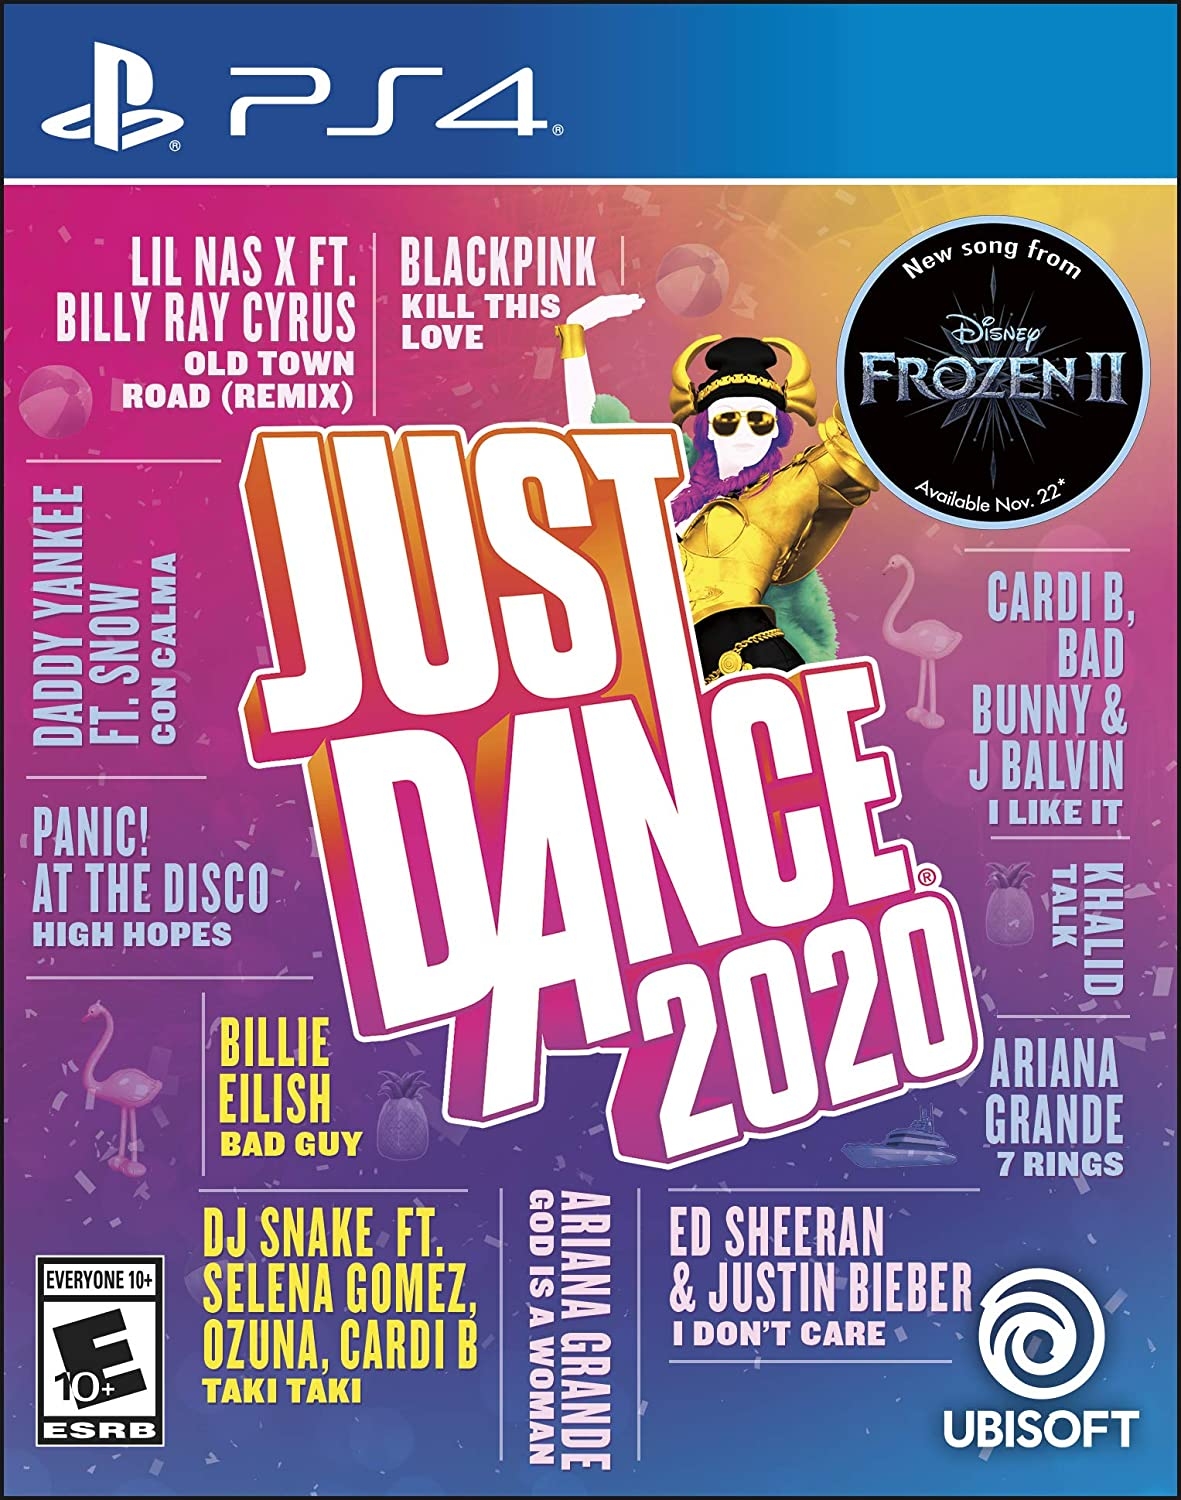 Psn November Free Games 2020.Amazon Com Just Dance 2020 Playstation 4 Standard Edition